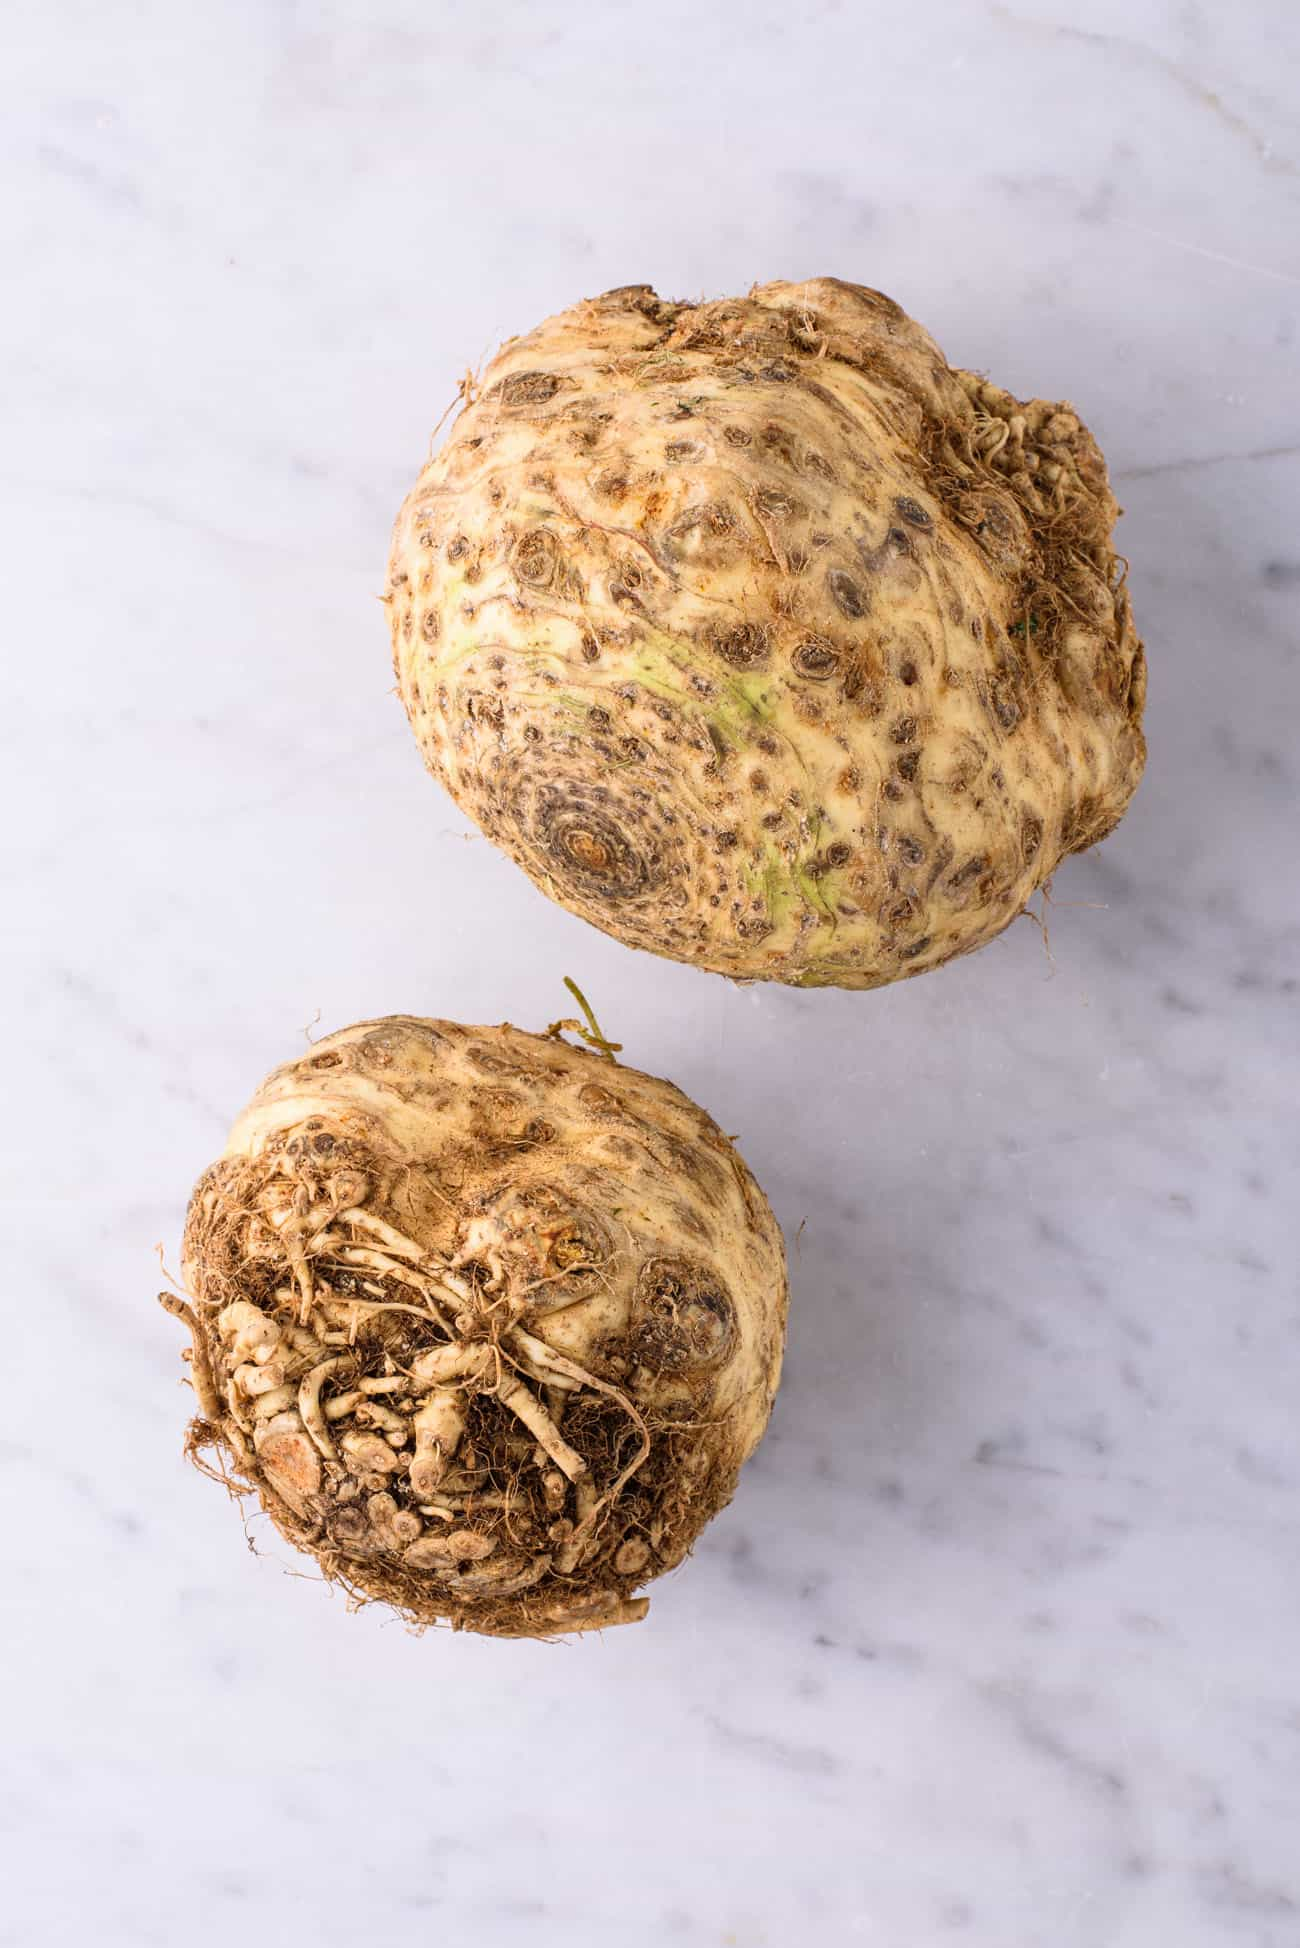 Two celeriac bulbs on a marble table